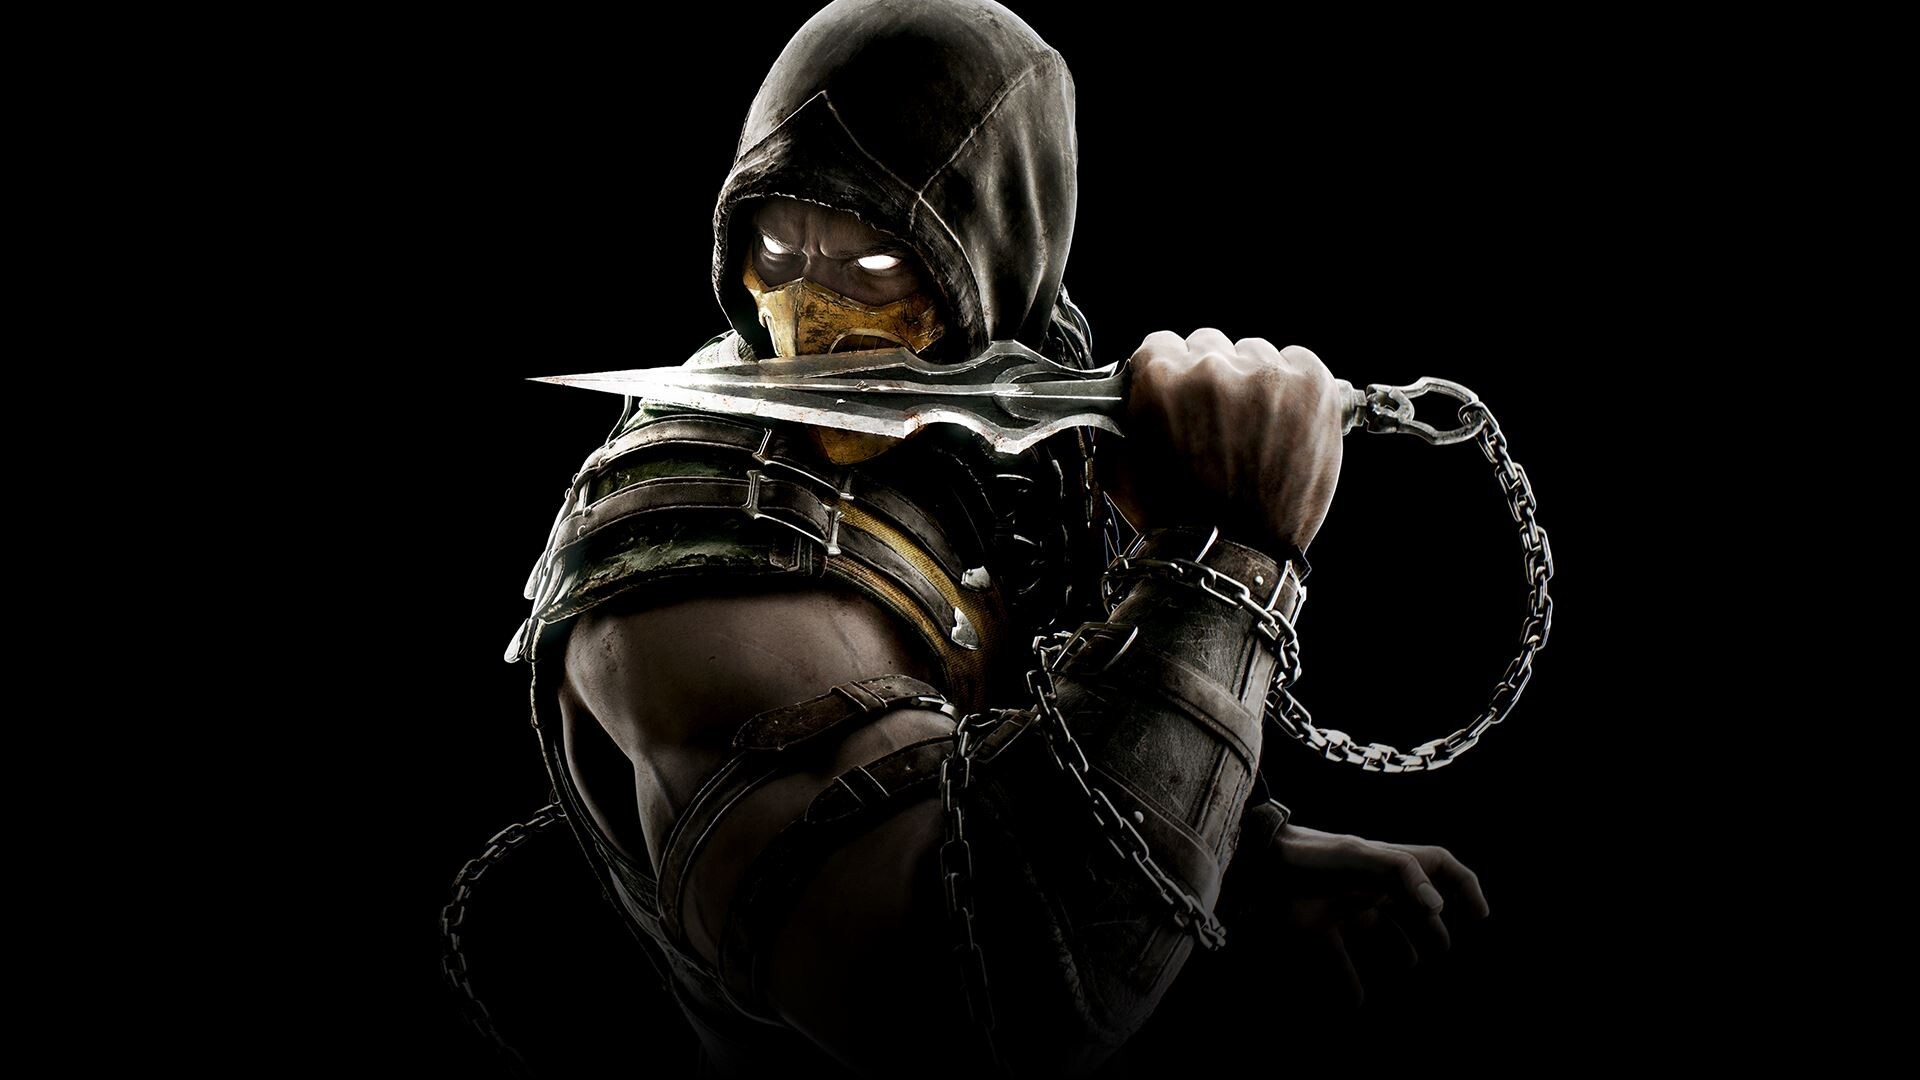 Mortal Kombat X Scorpio 3d Cool Video Games Wallpapers: 1920x1080 Scorpion Mortal Kombat Laptop Full HD 1080P HD